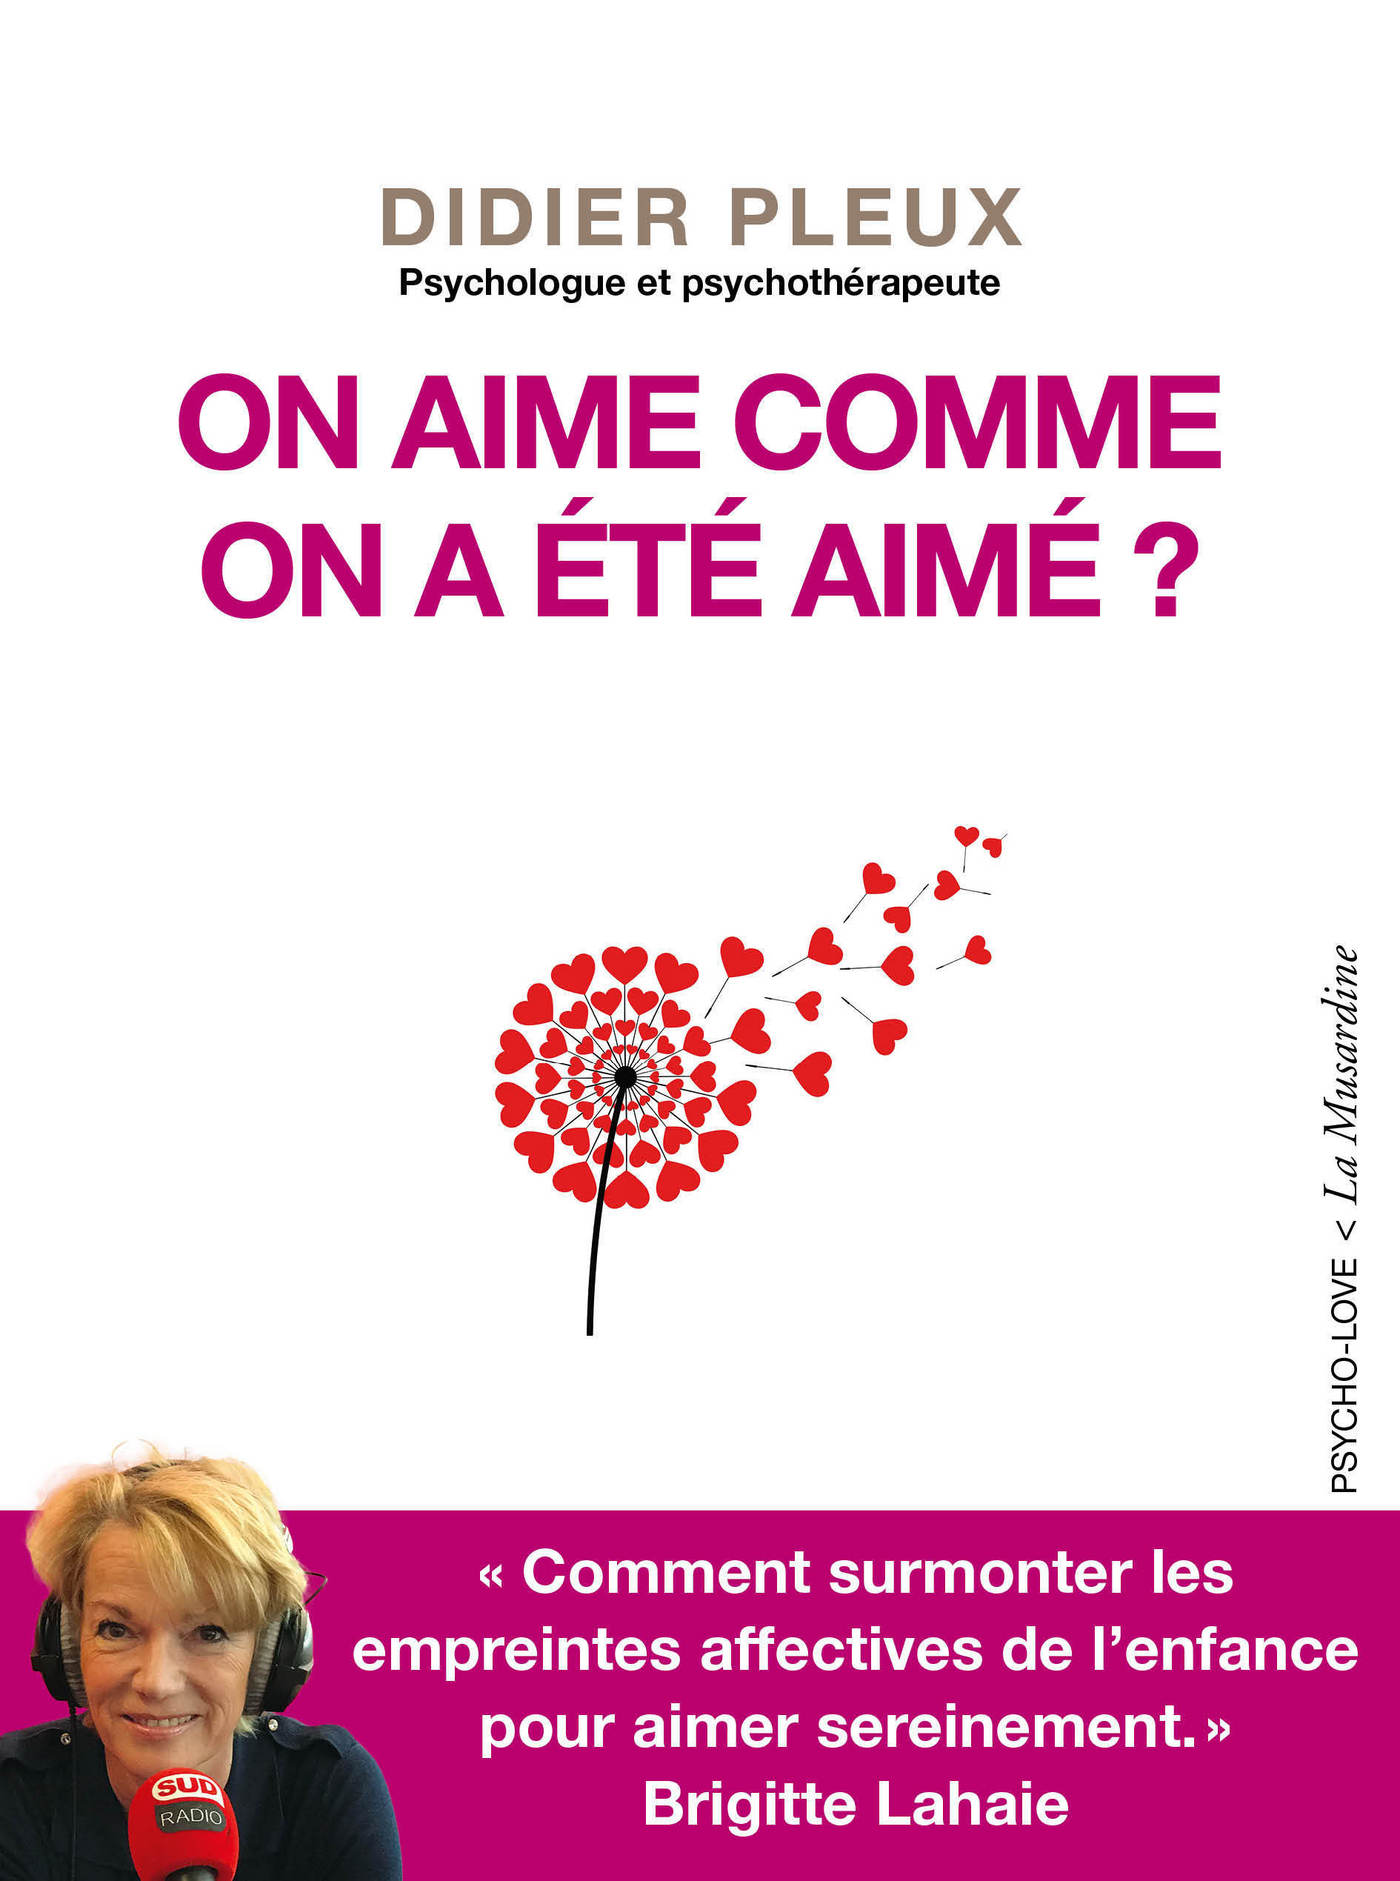 On aime comme on a ?t? aim? ?